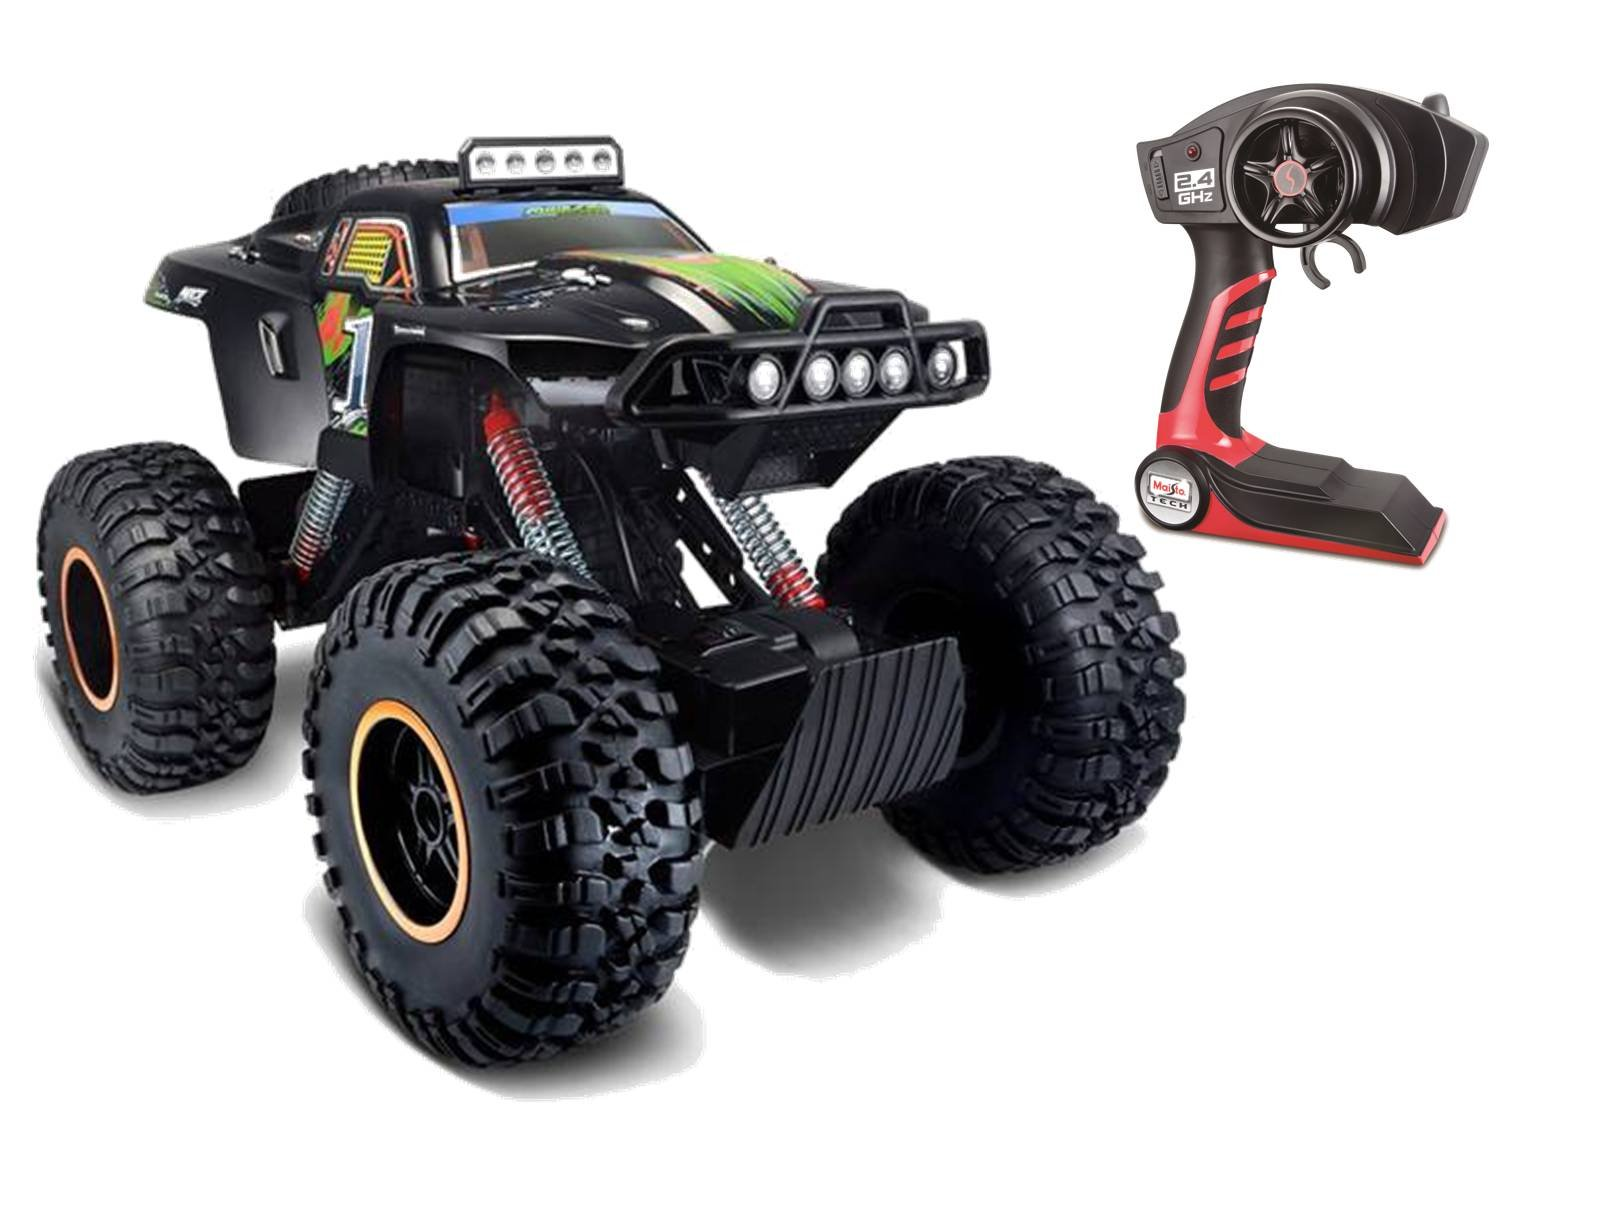 Maisto 581189 R/C Rock Zilla 42 cm 2.4 GHz RTR Vehicle